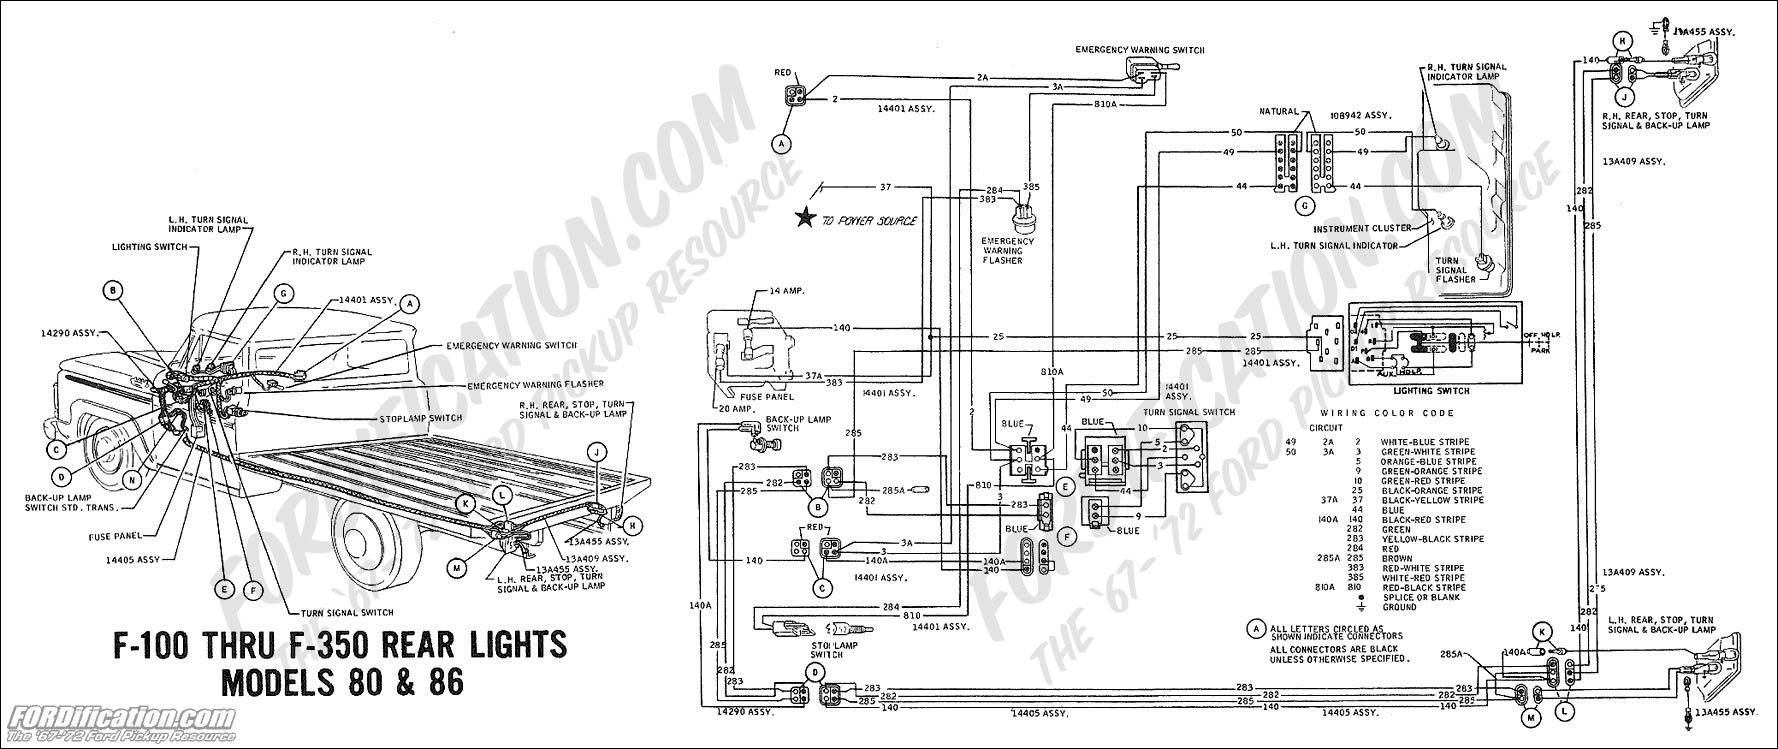 wiring_69rearlights mdls80 86 ford truck technical drawings and schematics section h wiring ford truck wiring diagrams free at edmiracle.co